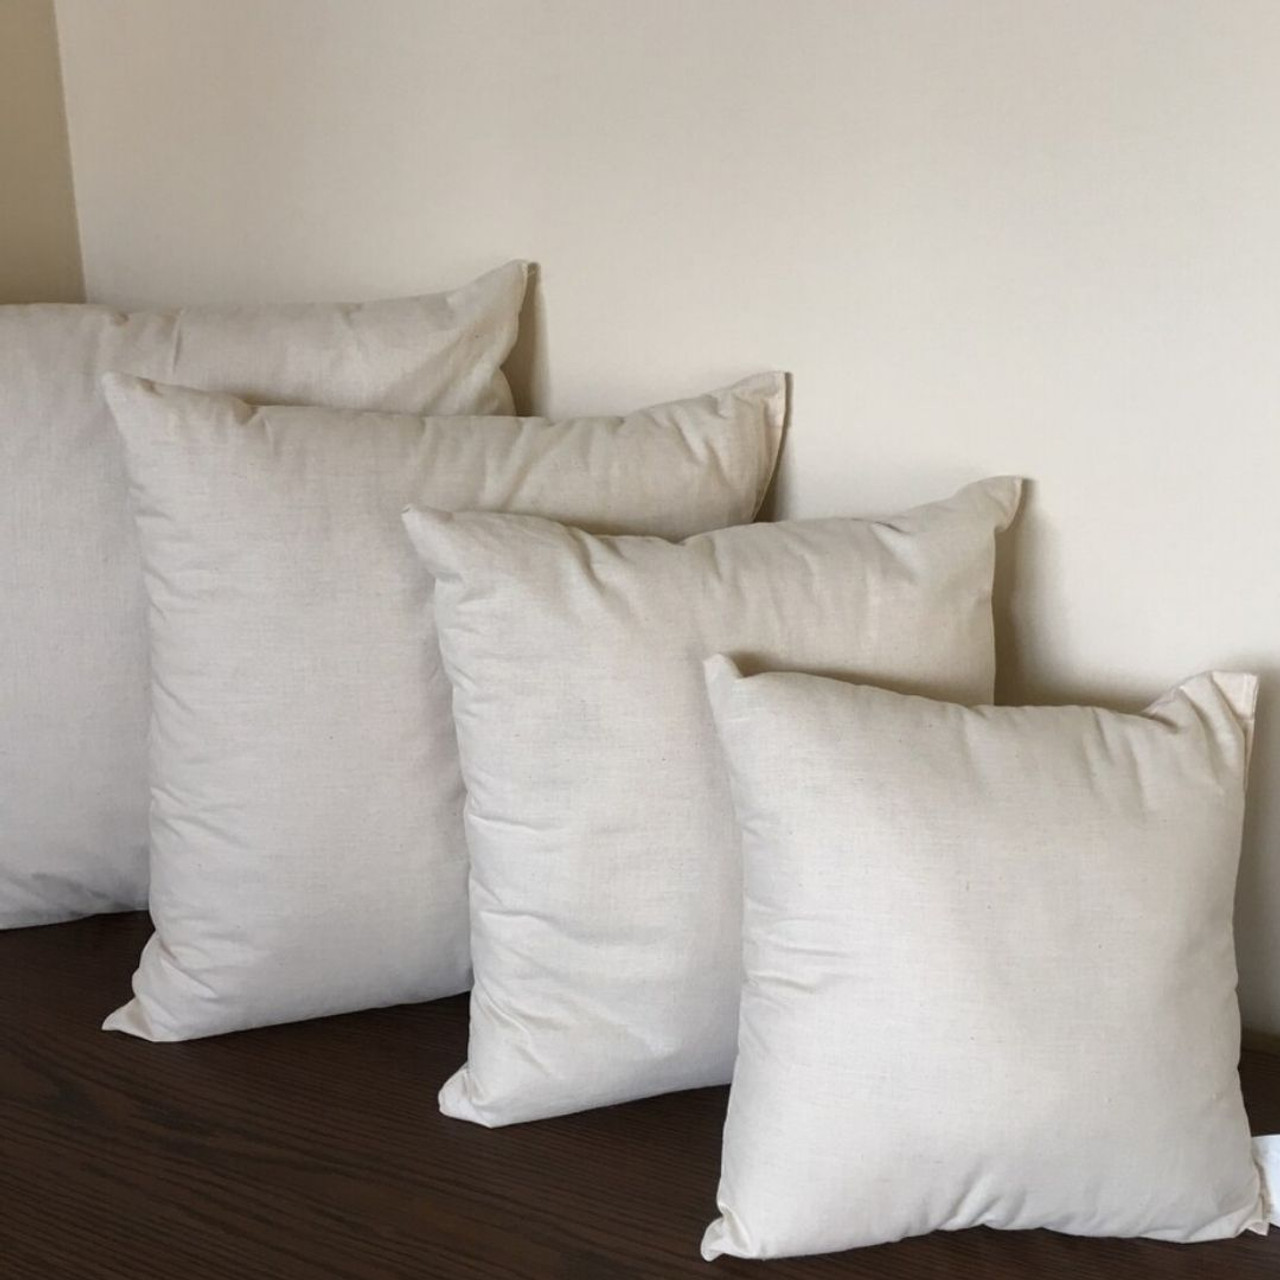 wool filled pillow inserts with organic cotton cover